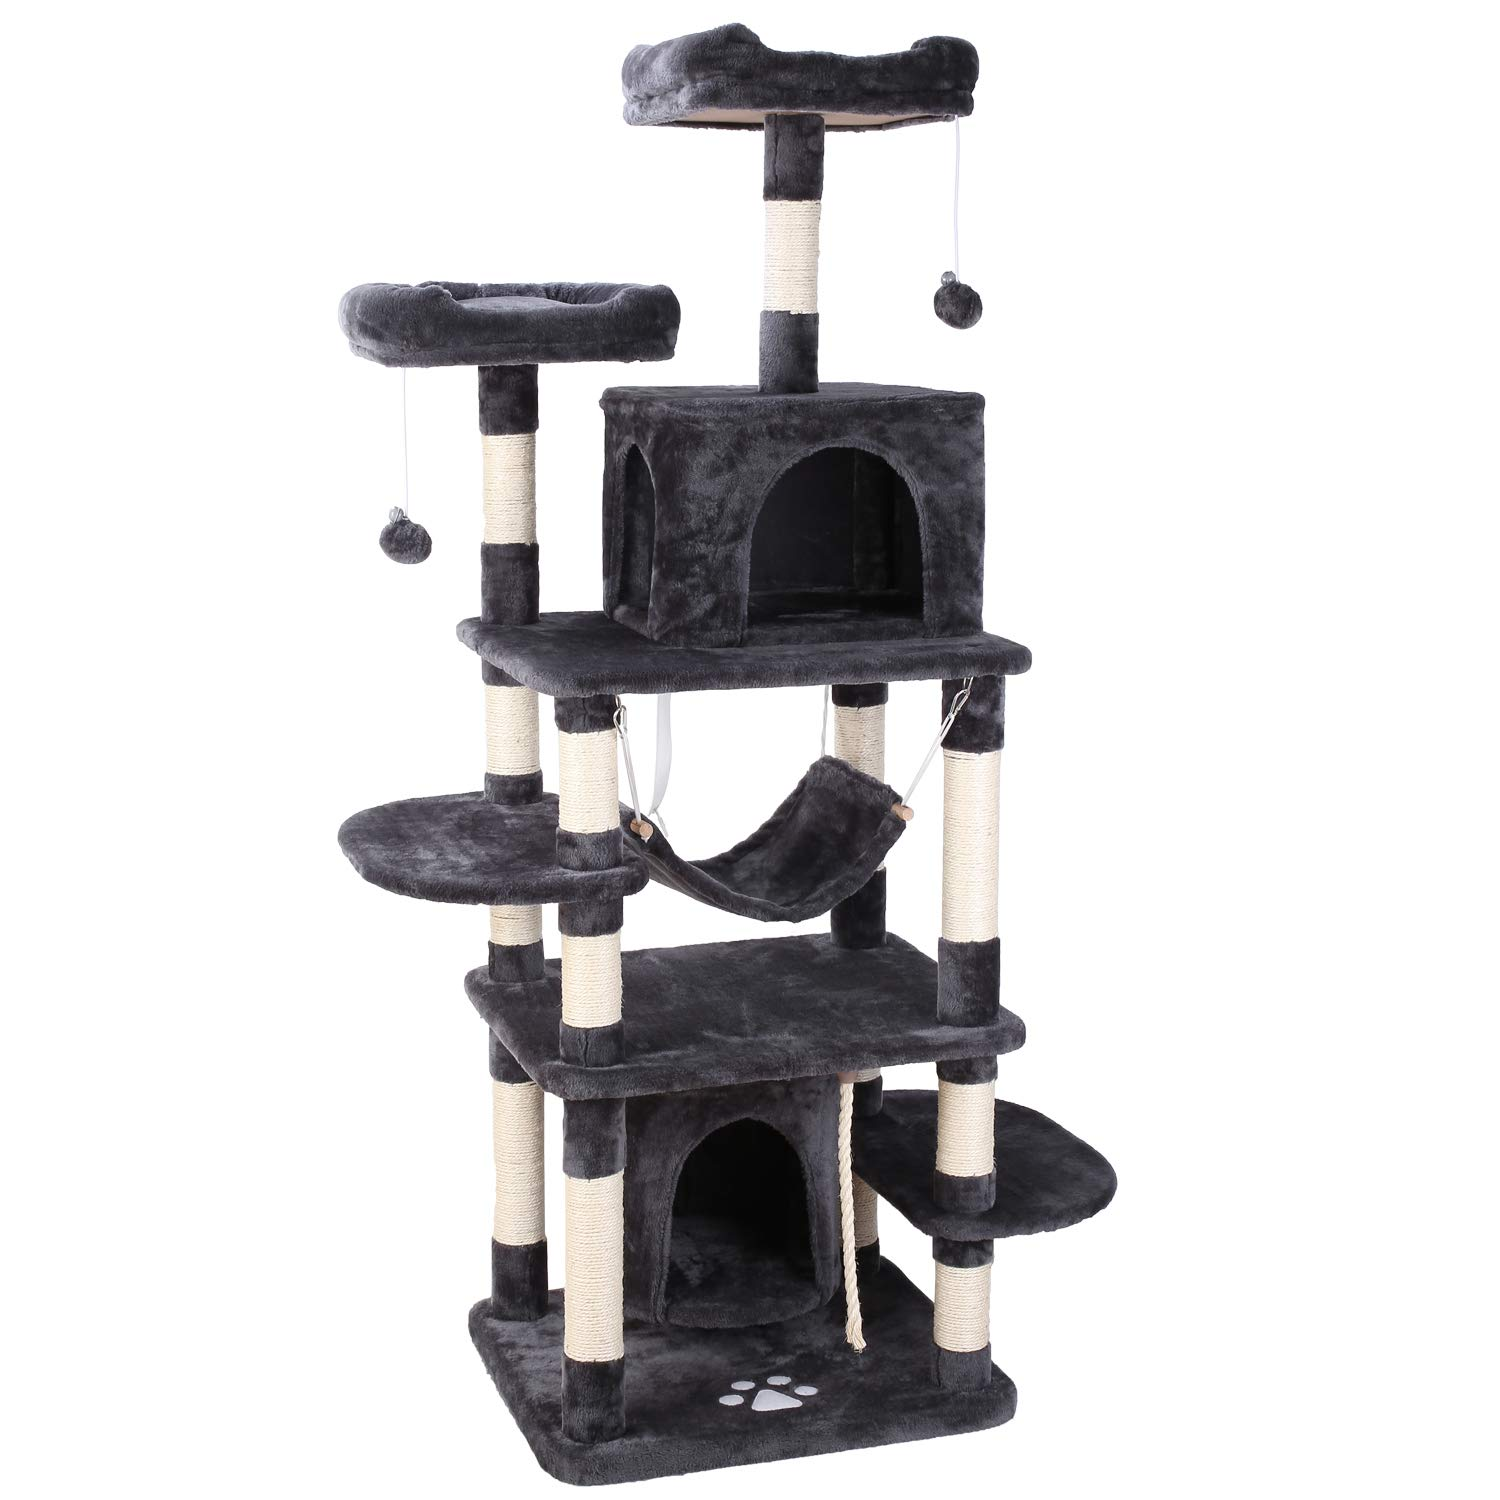 FEANDREA Multi-Level Cat Tree with Feeder Bowl Sisal-Covered Scratching Posts,